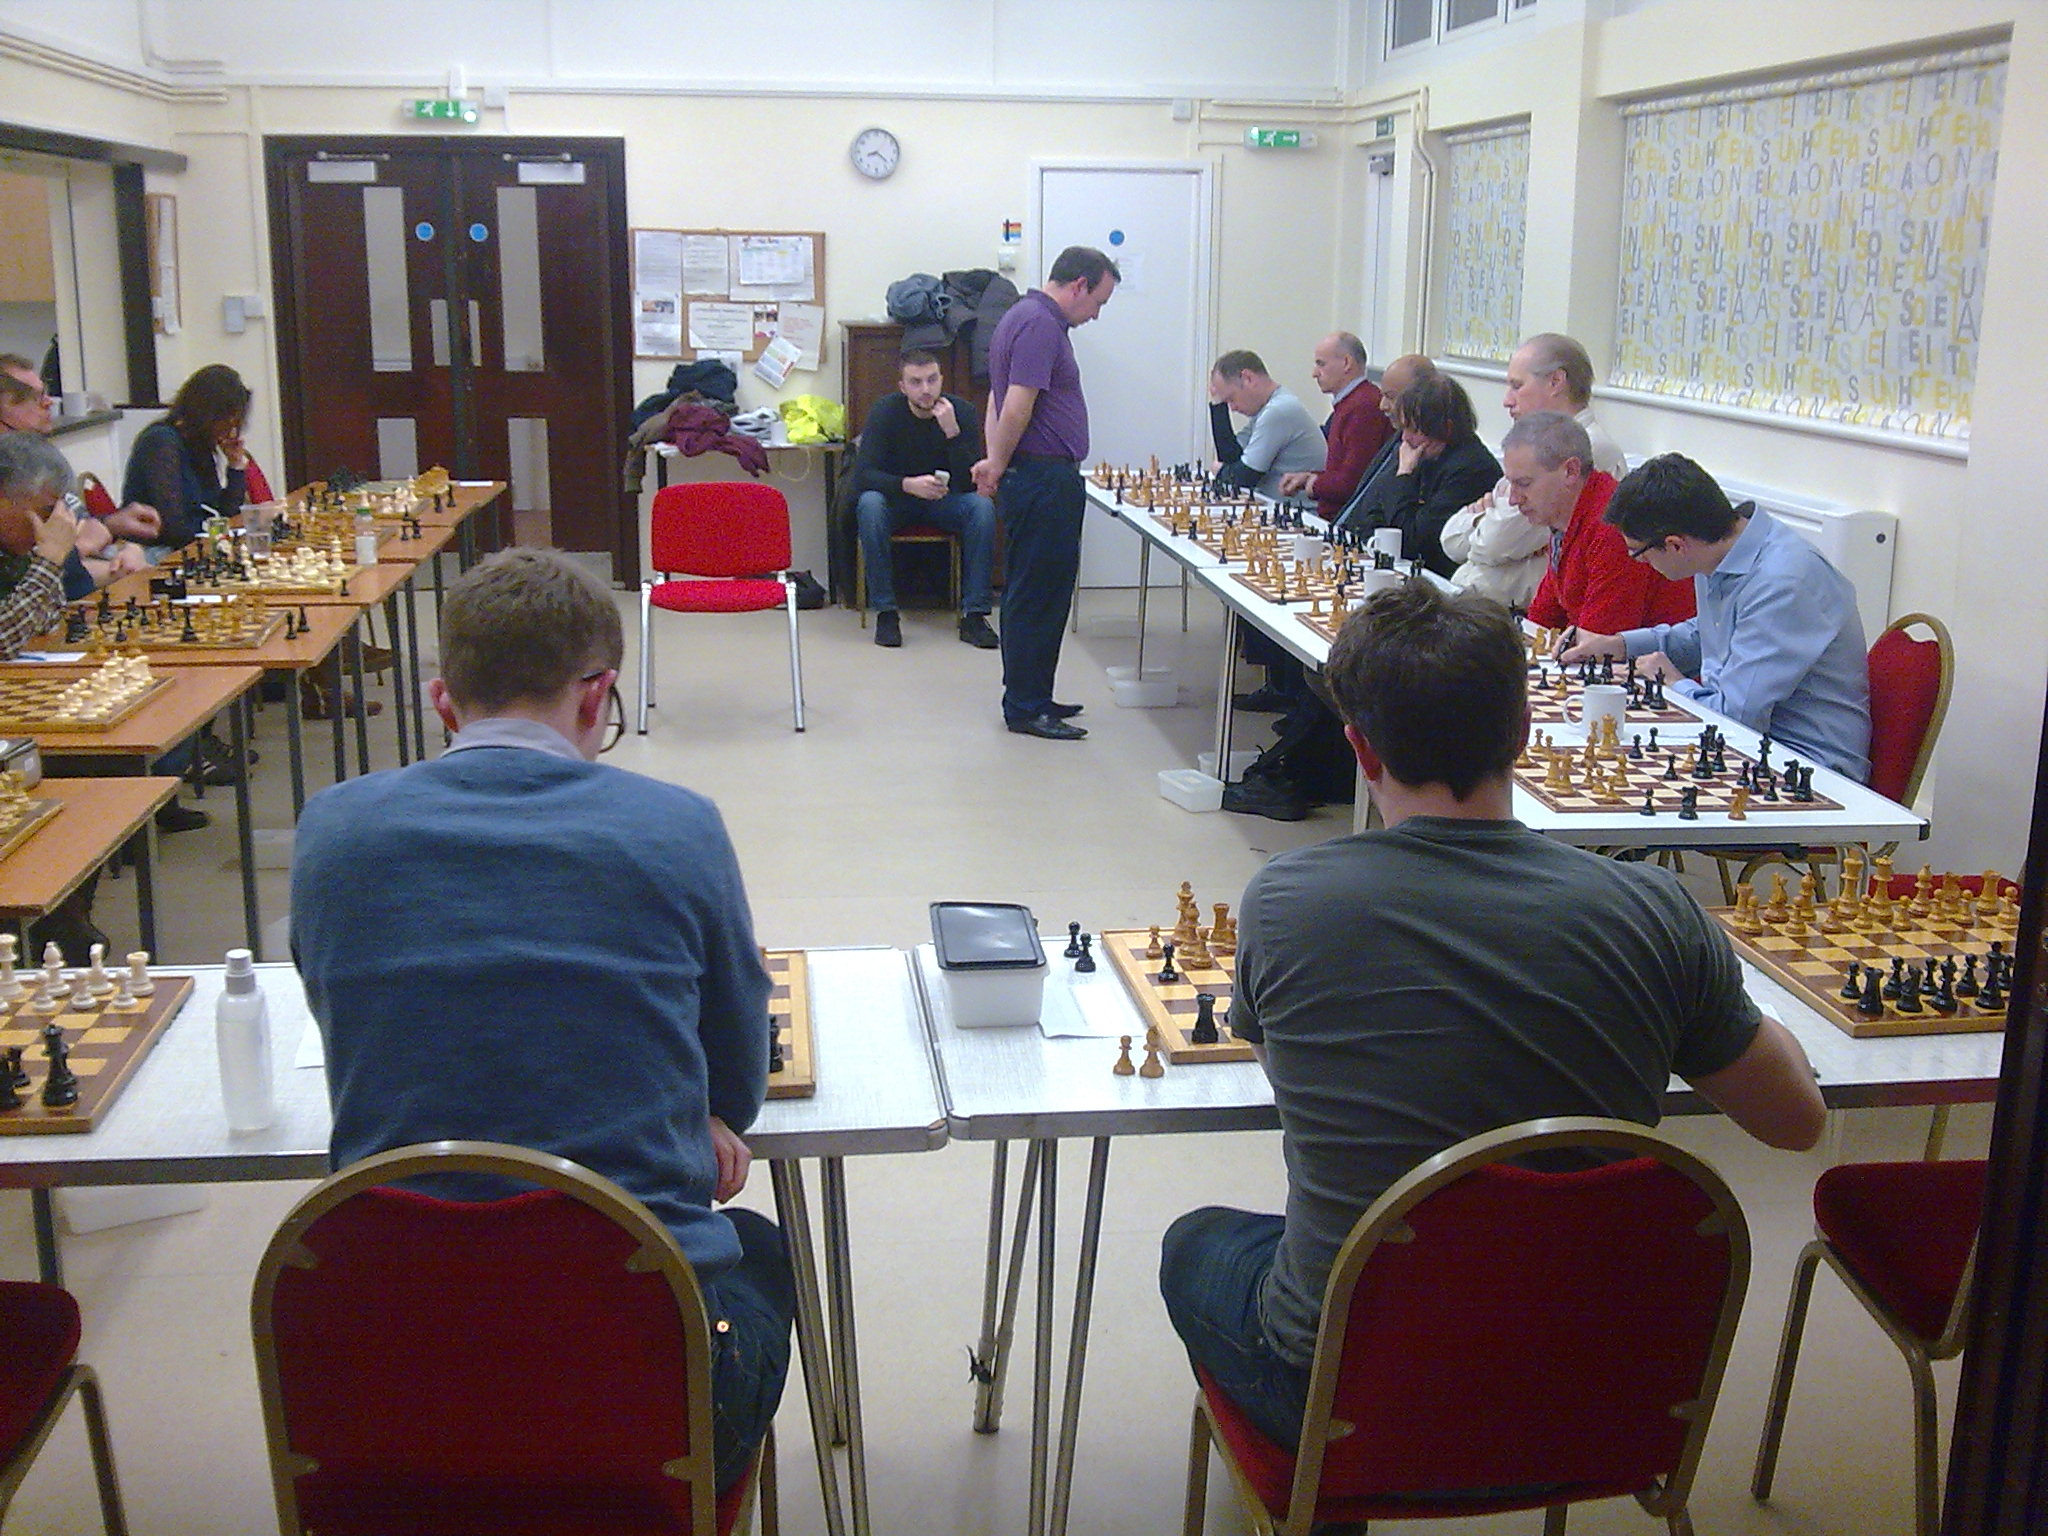 Carsten (top right, furthest board from the camera) mulls over his next move